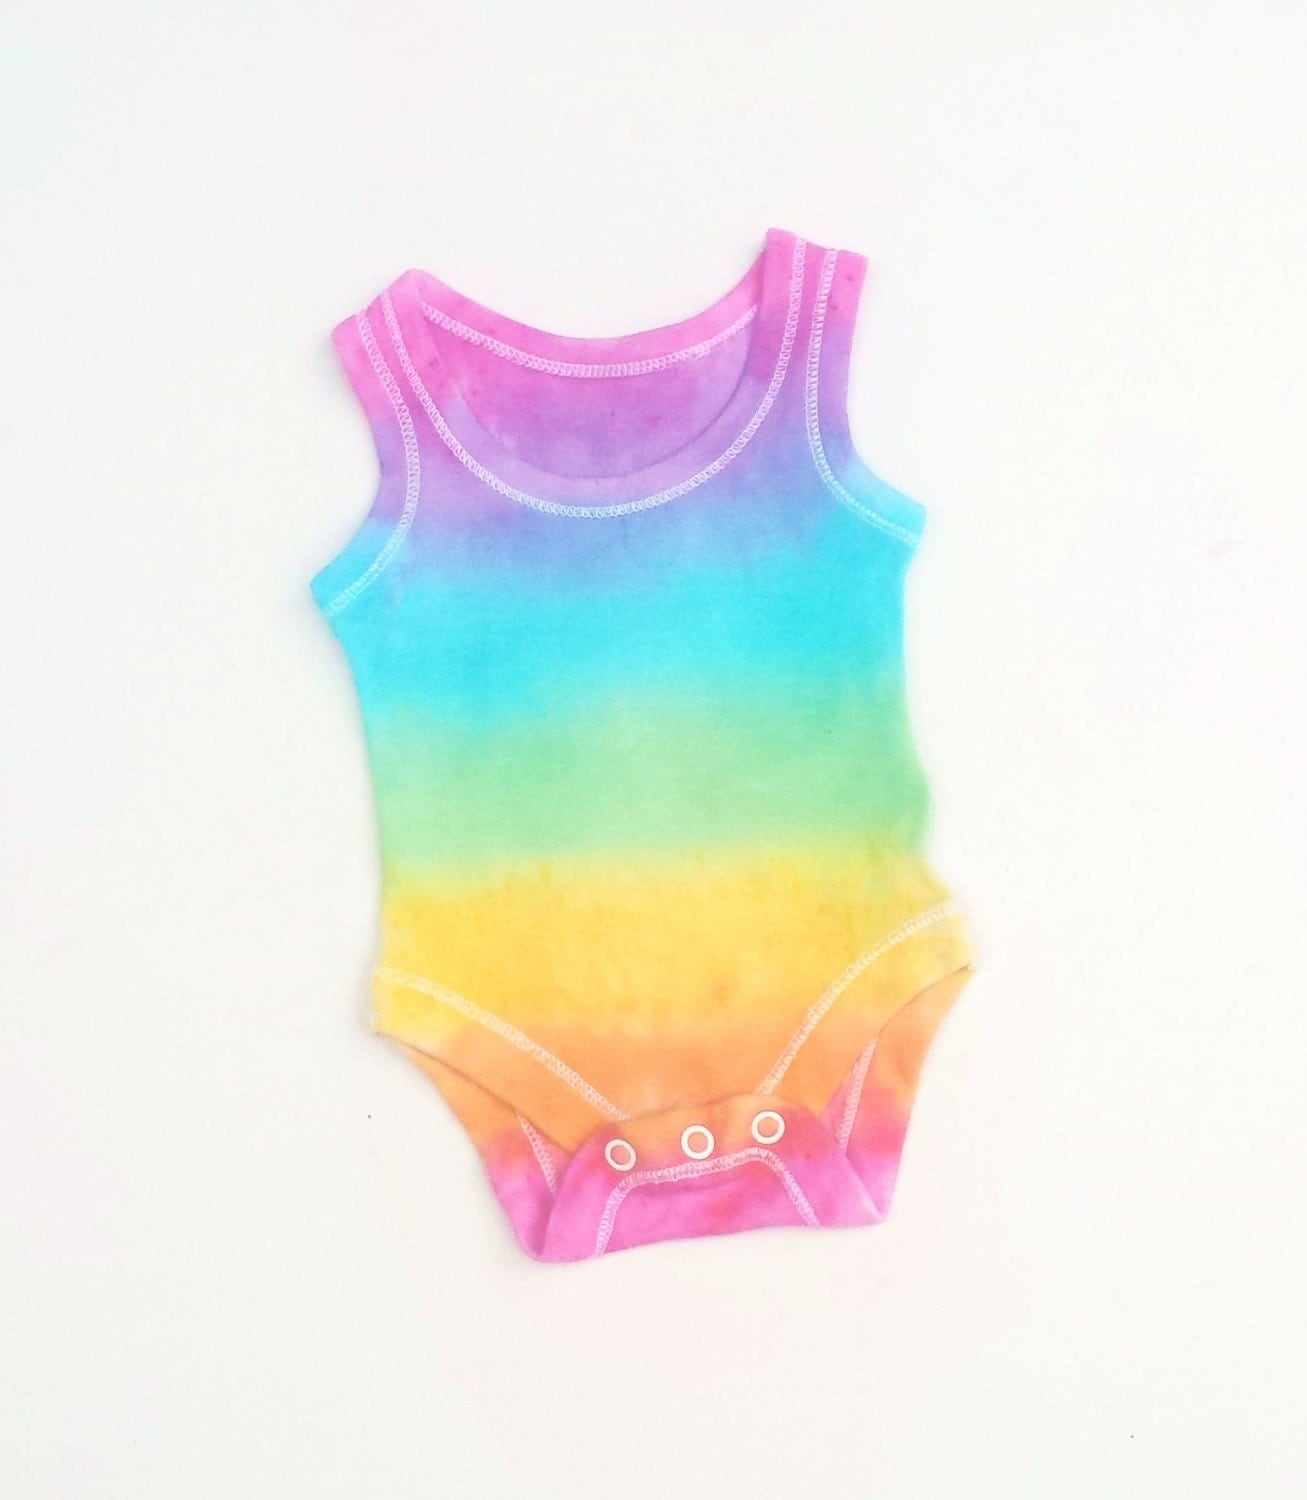 Baby Gifts For Hippie Parents : Rainbow baby tie dye vest bodysuit all sizes gifts hippie